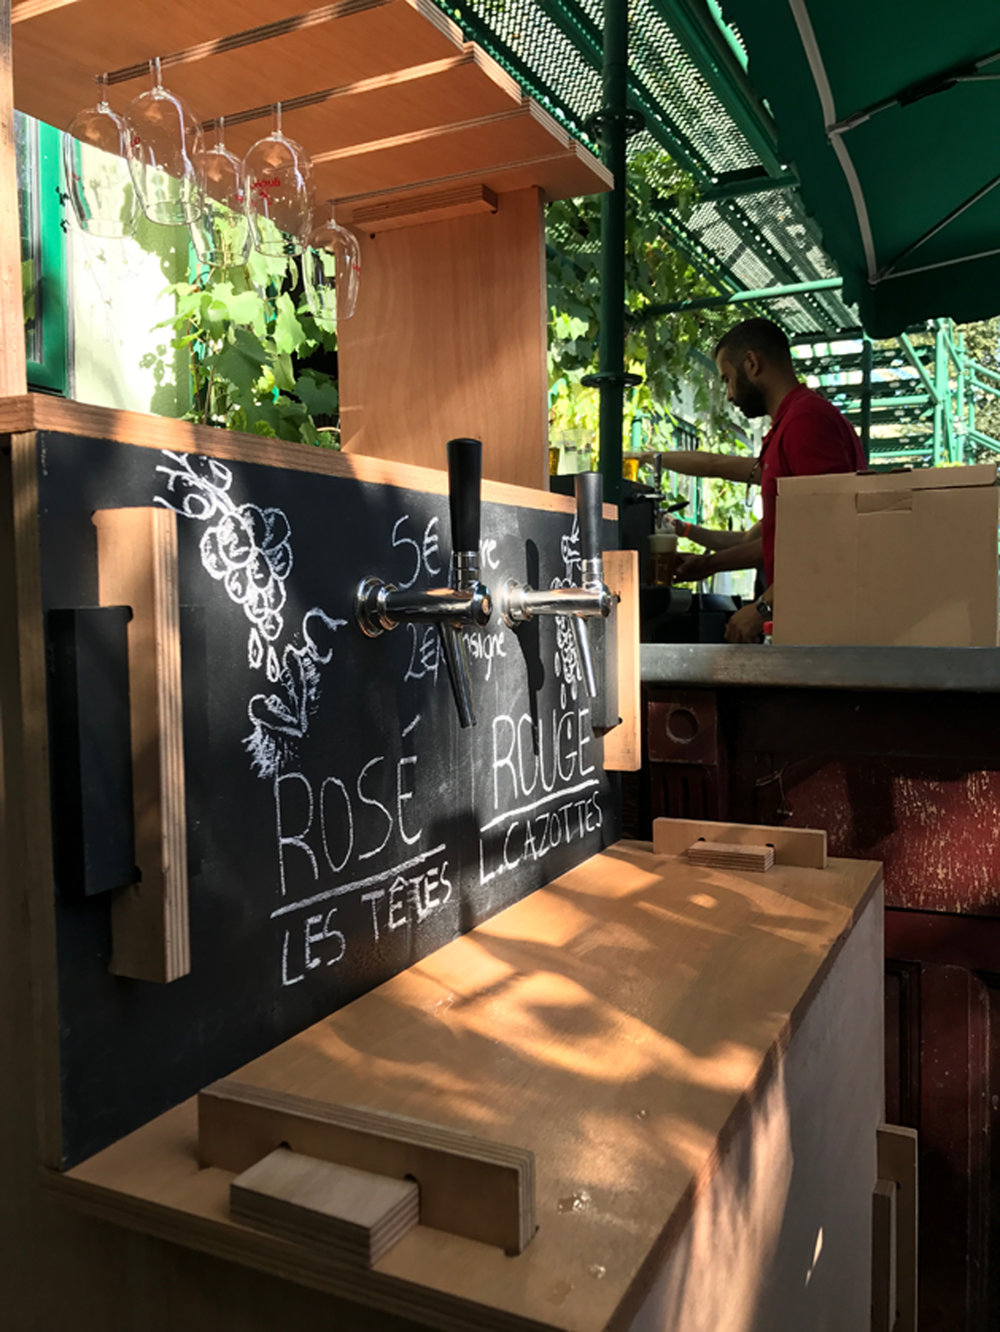 Flexible and de-mountable festival furniture for Grappes wine-on-tap bar. Image taken at La Ferme de Bonheur.  Grappes, Paris.